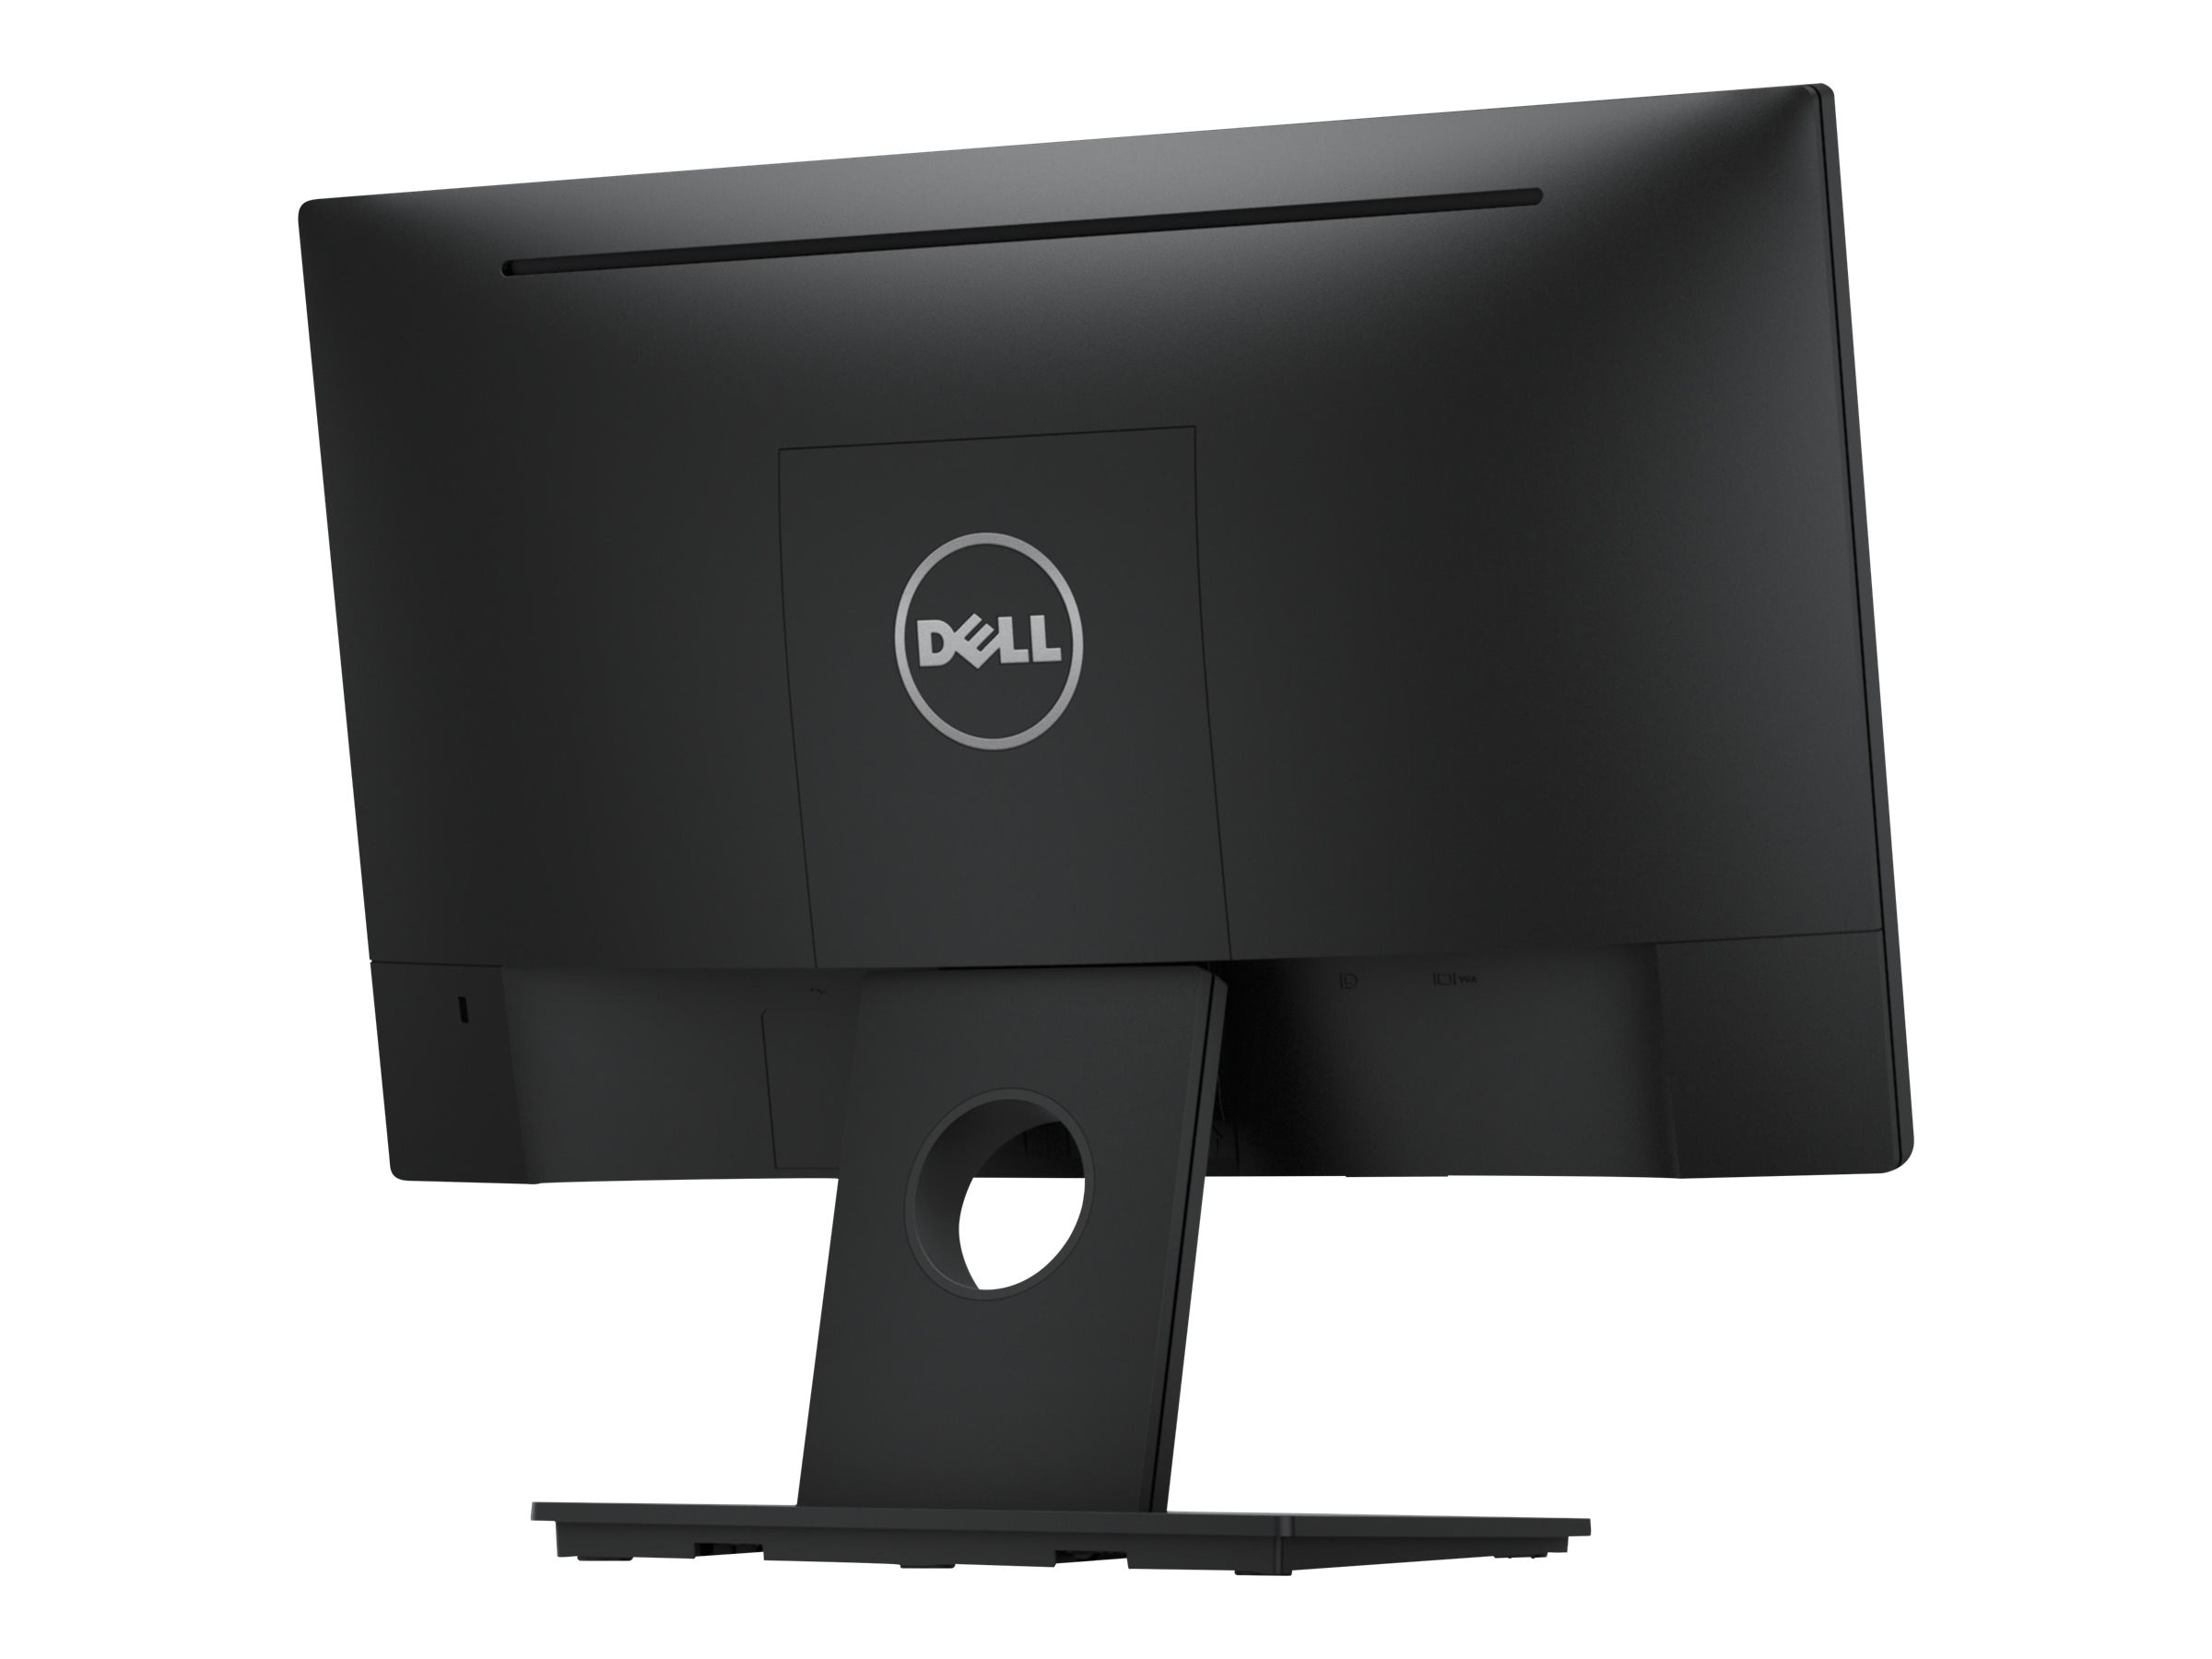 Dell 18.5 E1916H LED-LCD Monitor, Black, E1916H